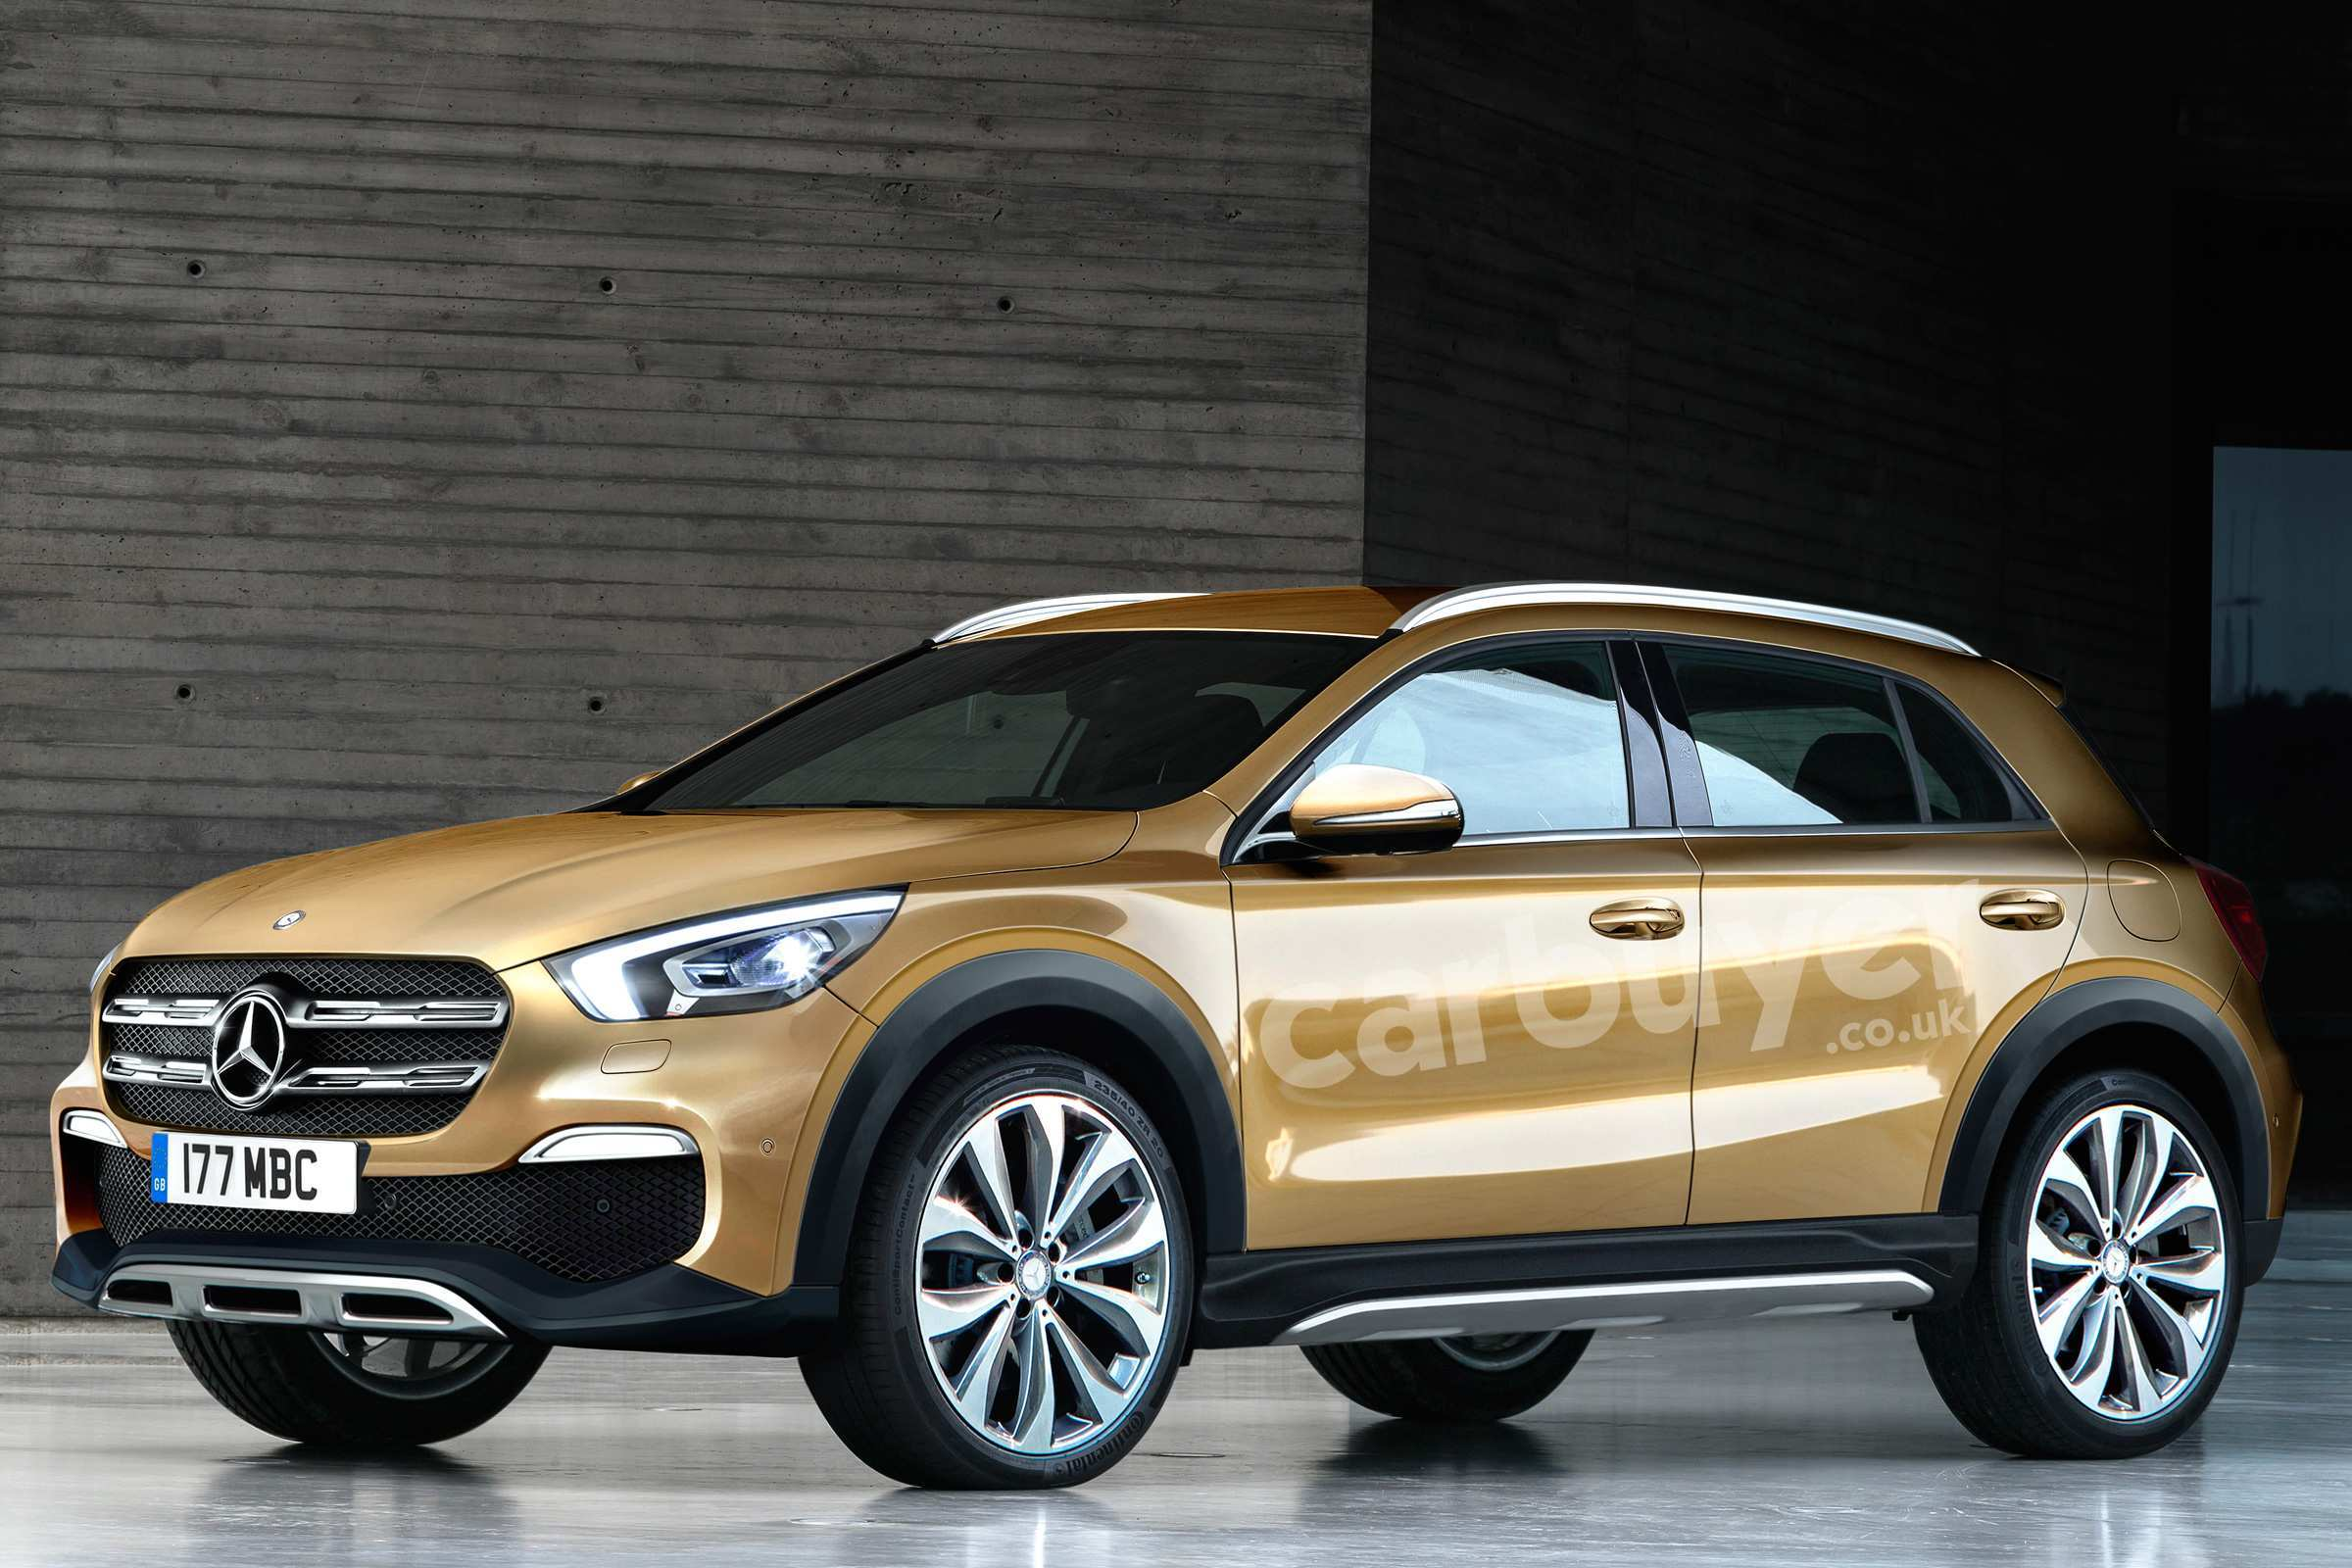 31 Gallery of Mercedes Gla 2019 Exterior and Interior by Mercedes Gla 2019